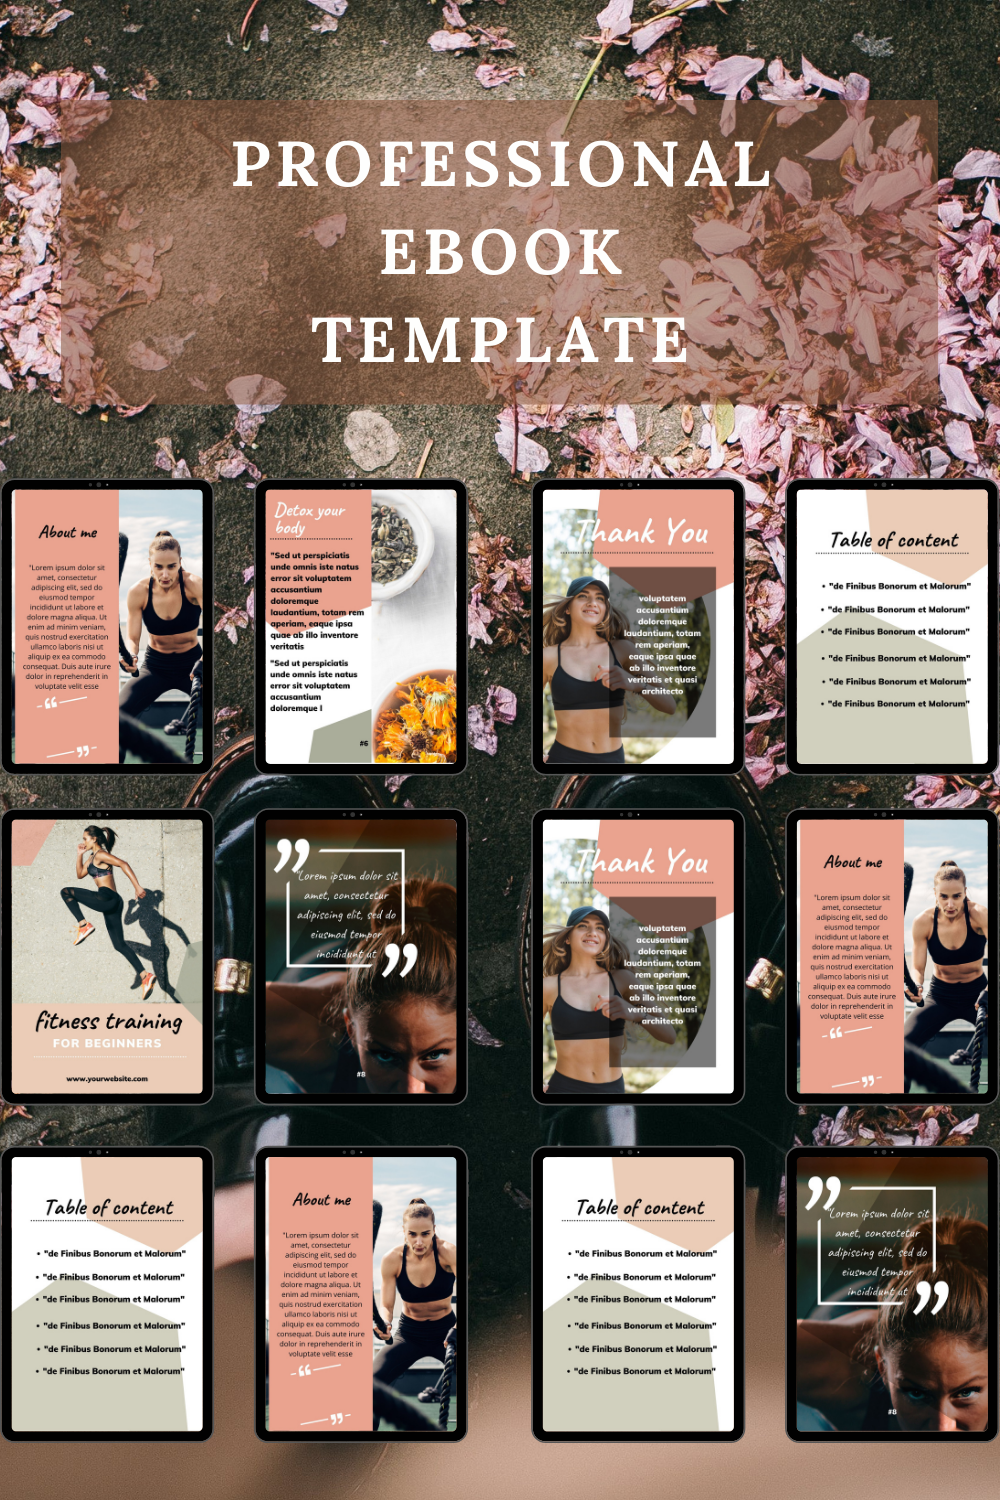 Ebook workbook template for bloggers and coaches N